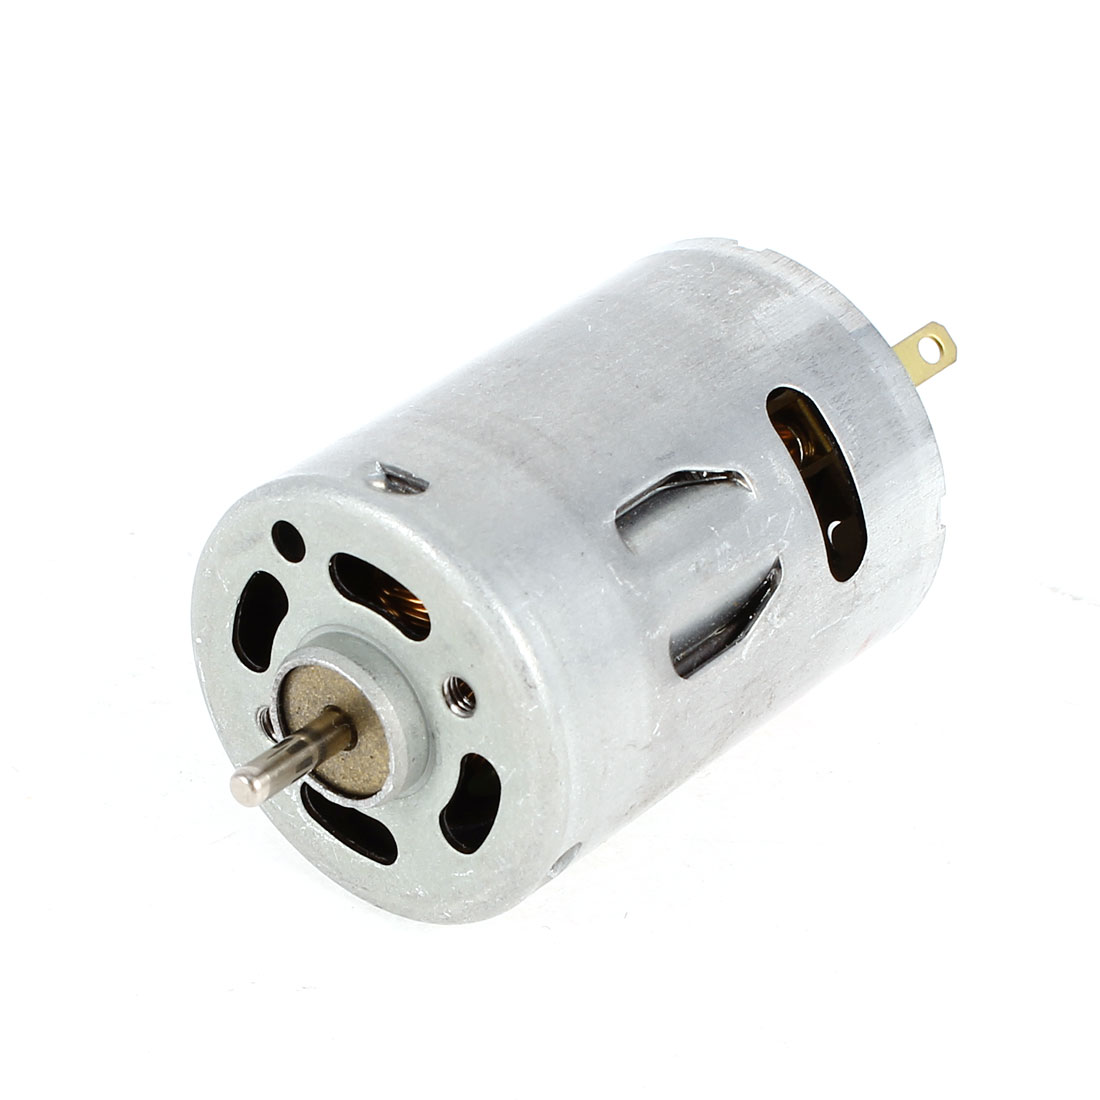 DC 3-5V 5000-13000RPM Permanent Magnetic Micro Motor for Buggy